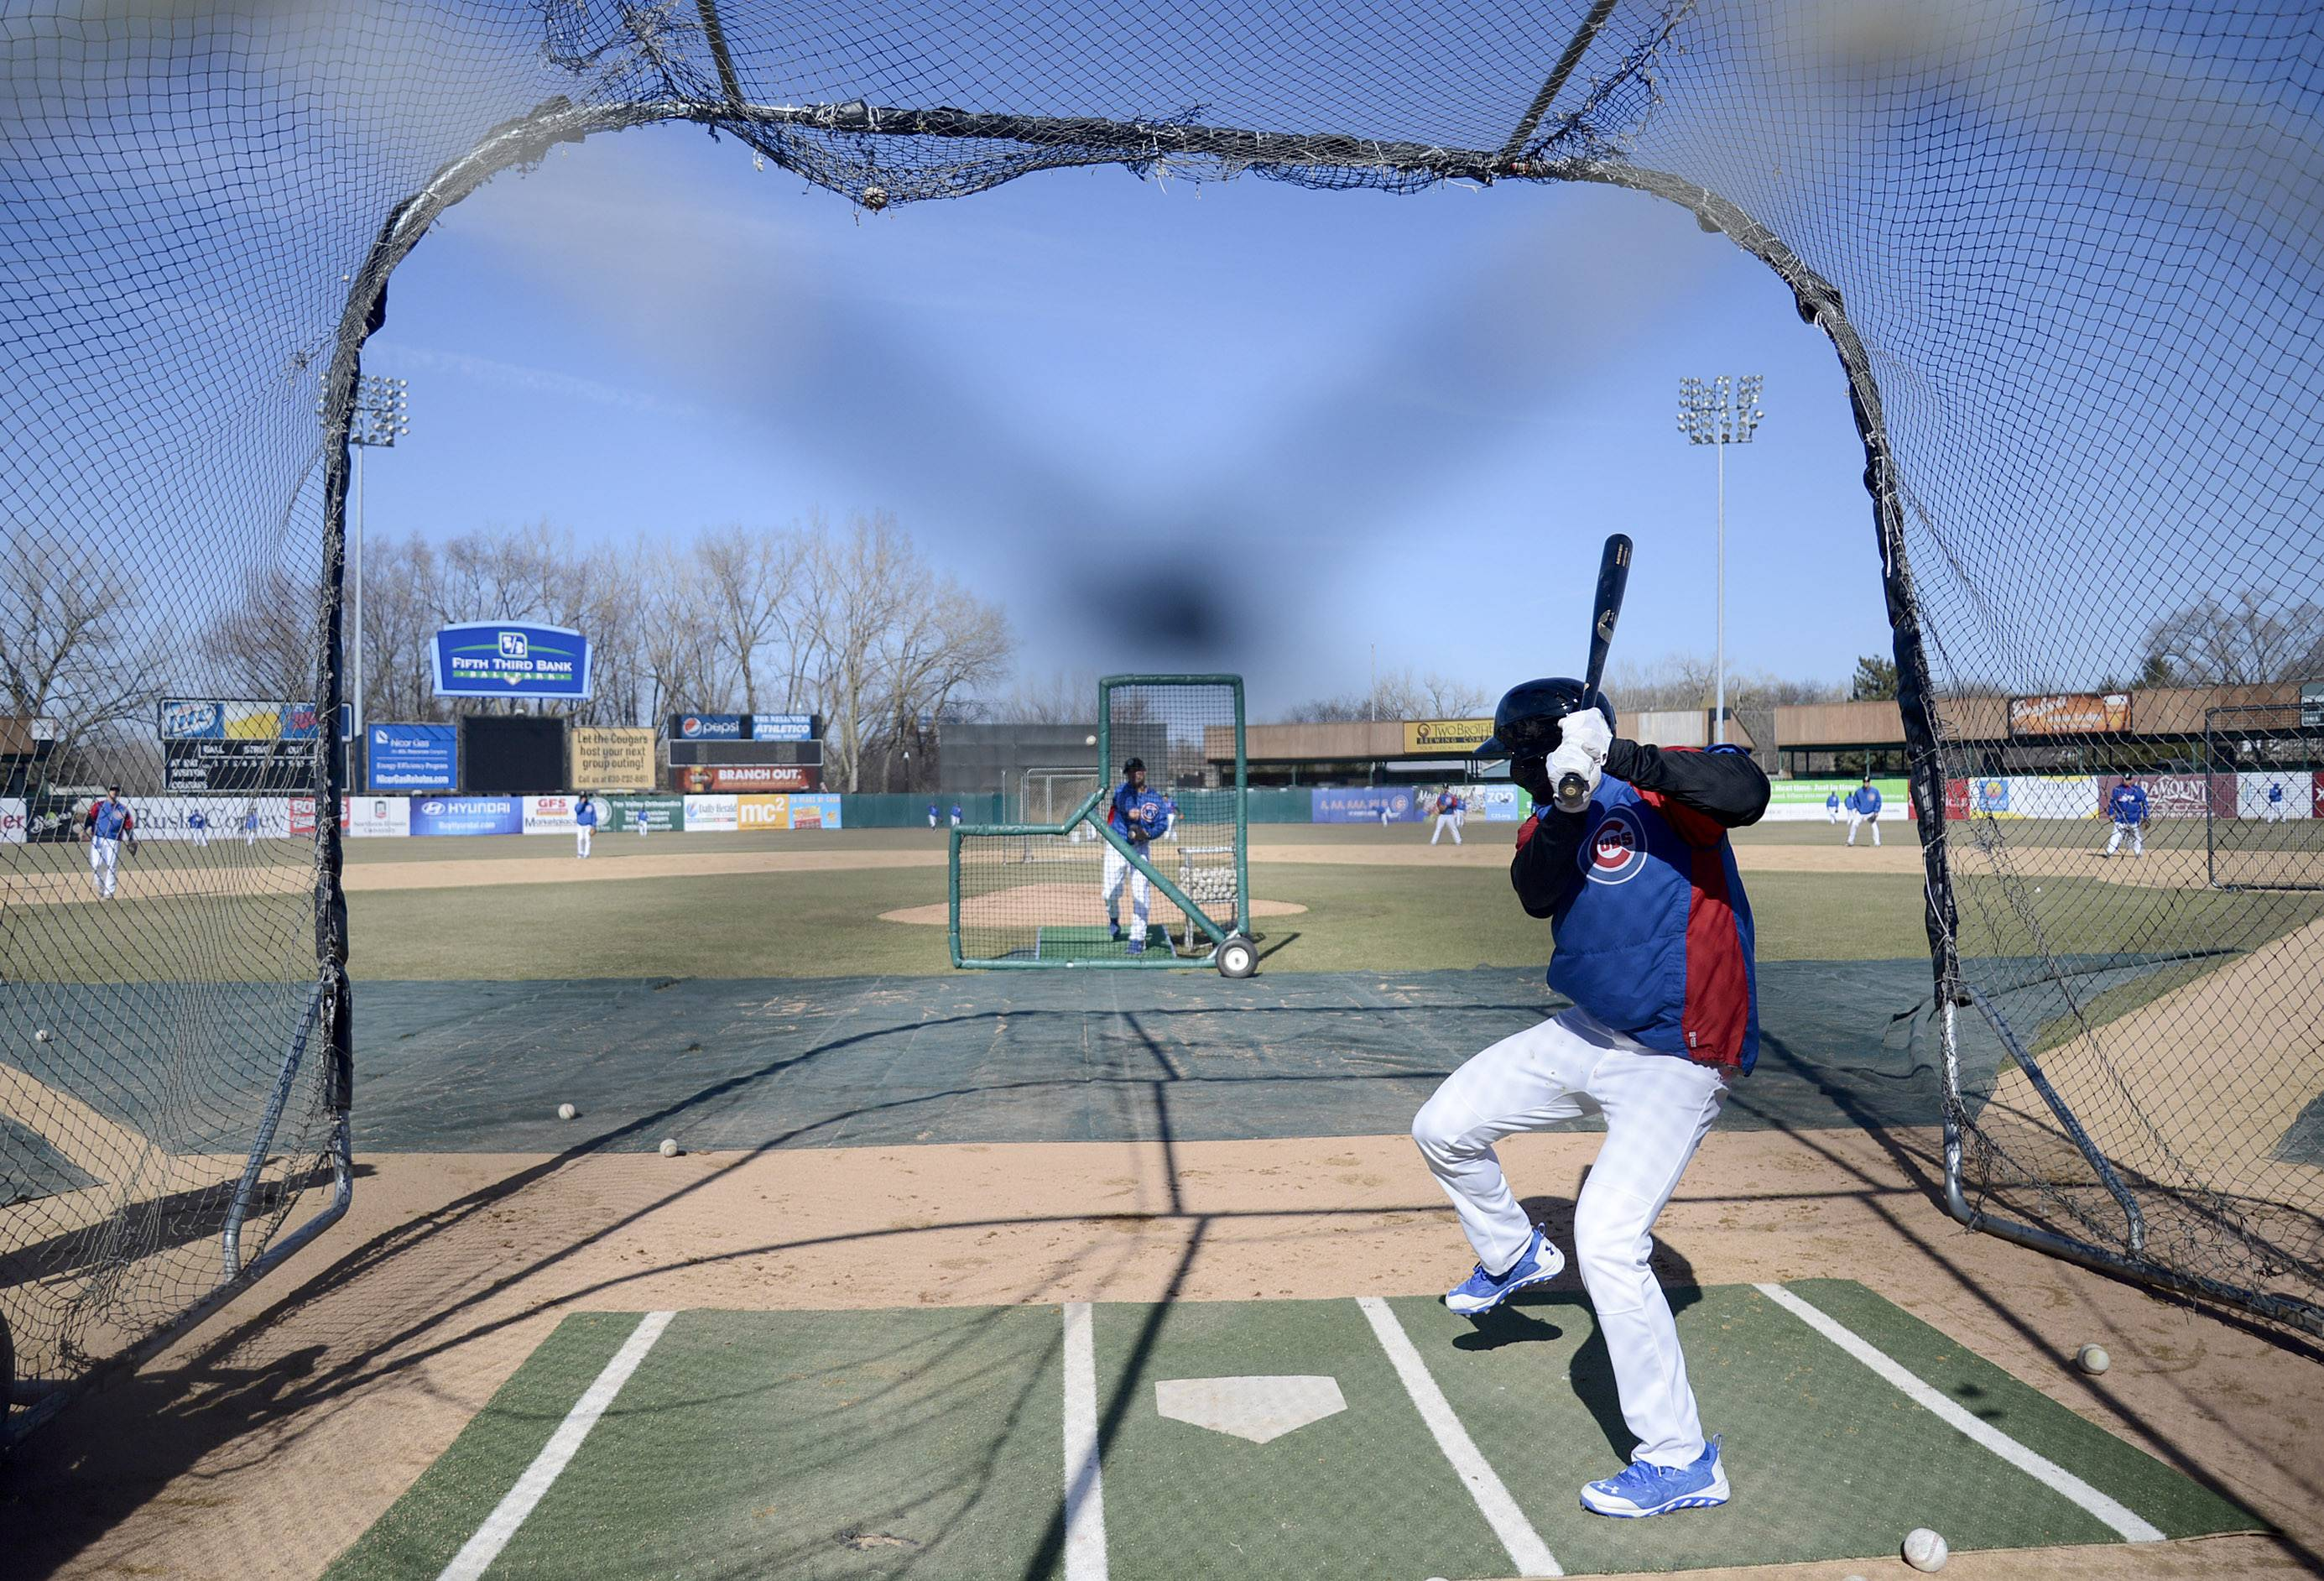 Kane County Cougars outfielder Shawon Dunston Jr. takes in some batting practice in Geneva on Tuesday.